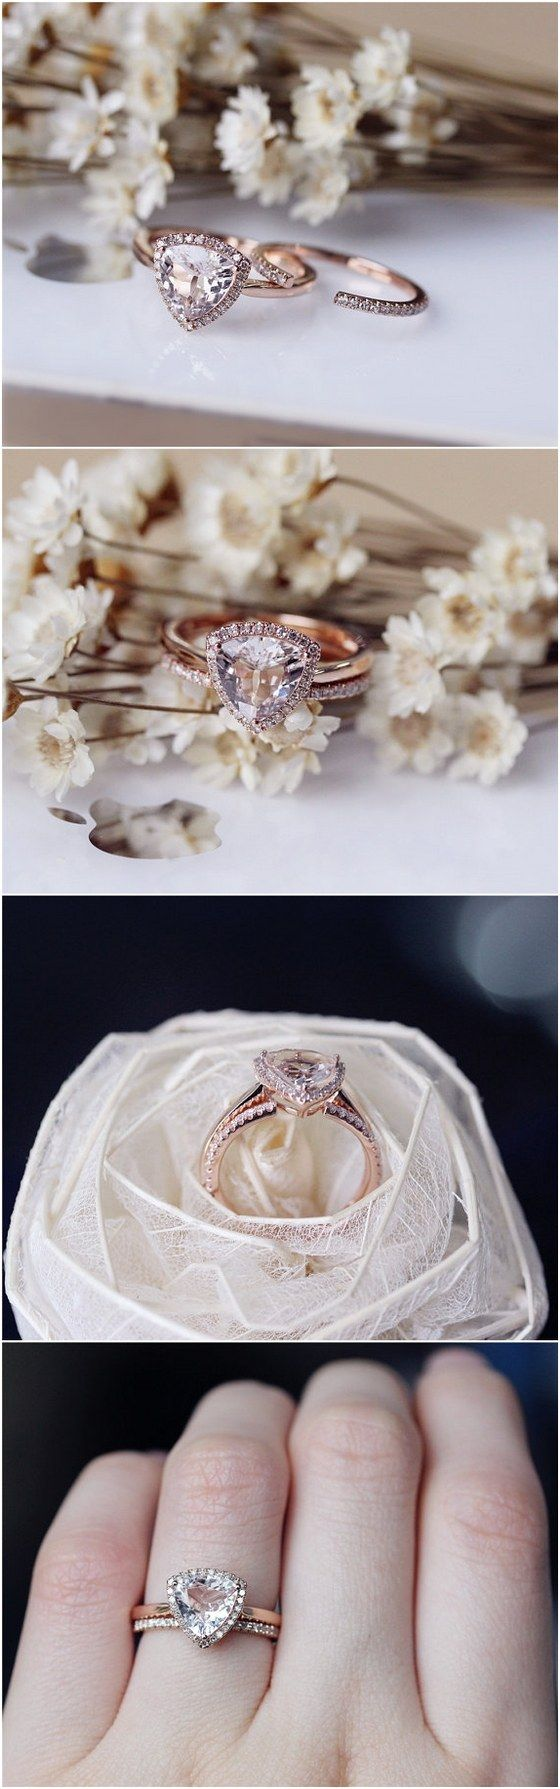 Trillion Morganite Ring Set Solid 14K Rose Gold Morganite Engagement Ring Set Wedding Ring Set Bridal Ring Set / http://www.deerpearlflowers.com/engagement-rings-from-etsy/